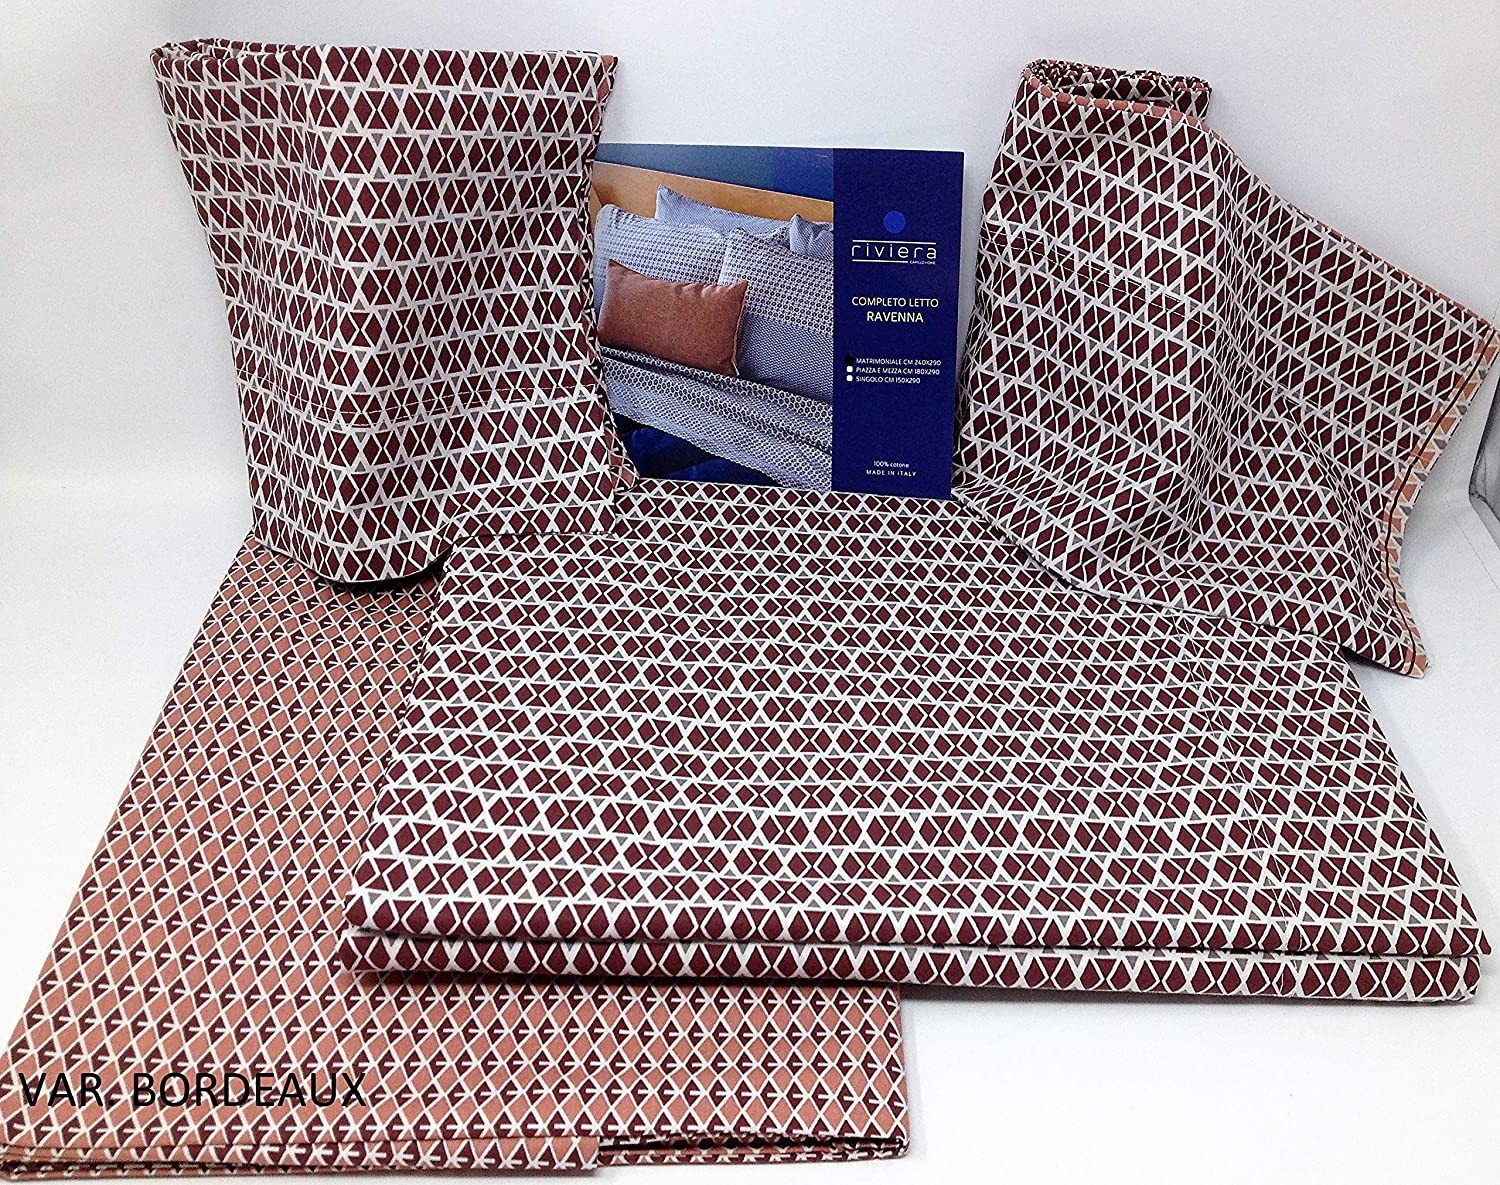 Riviera Home Collection Lenzuola.Riviera Double Bed Sheet Complete Cotton Ravenna Var Burgundy Amazon Co Uk Kitchen Home